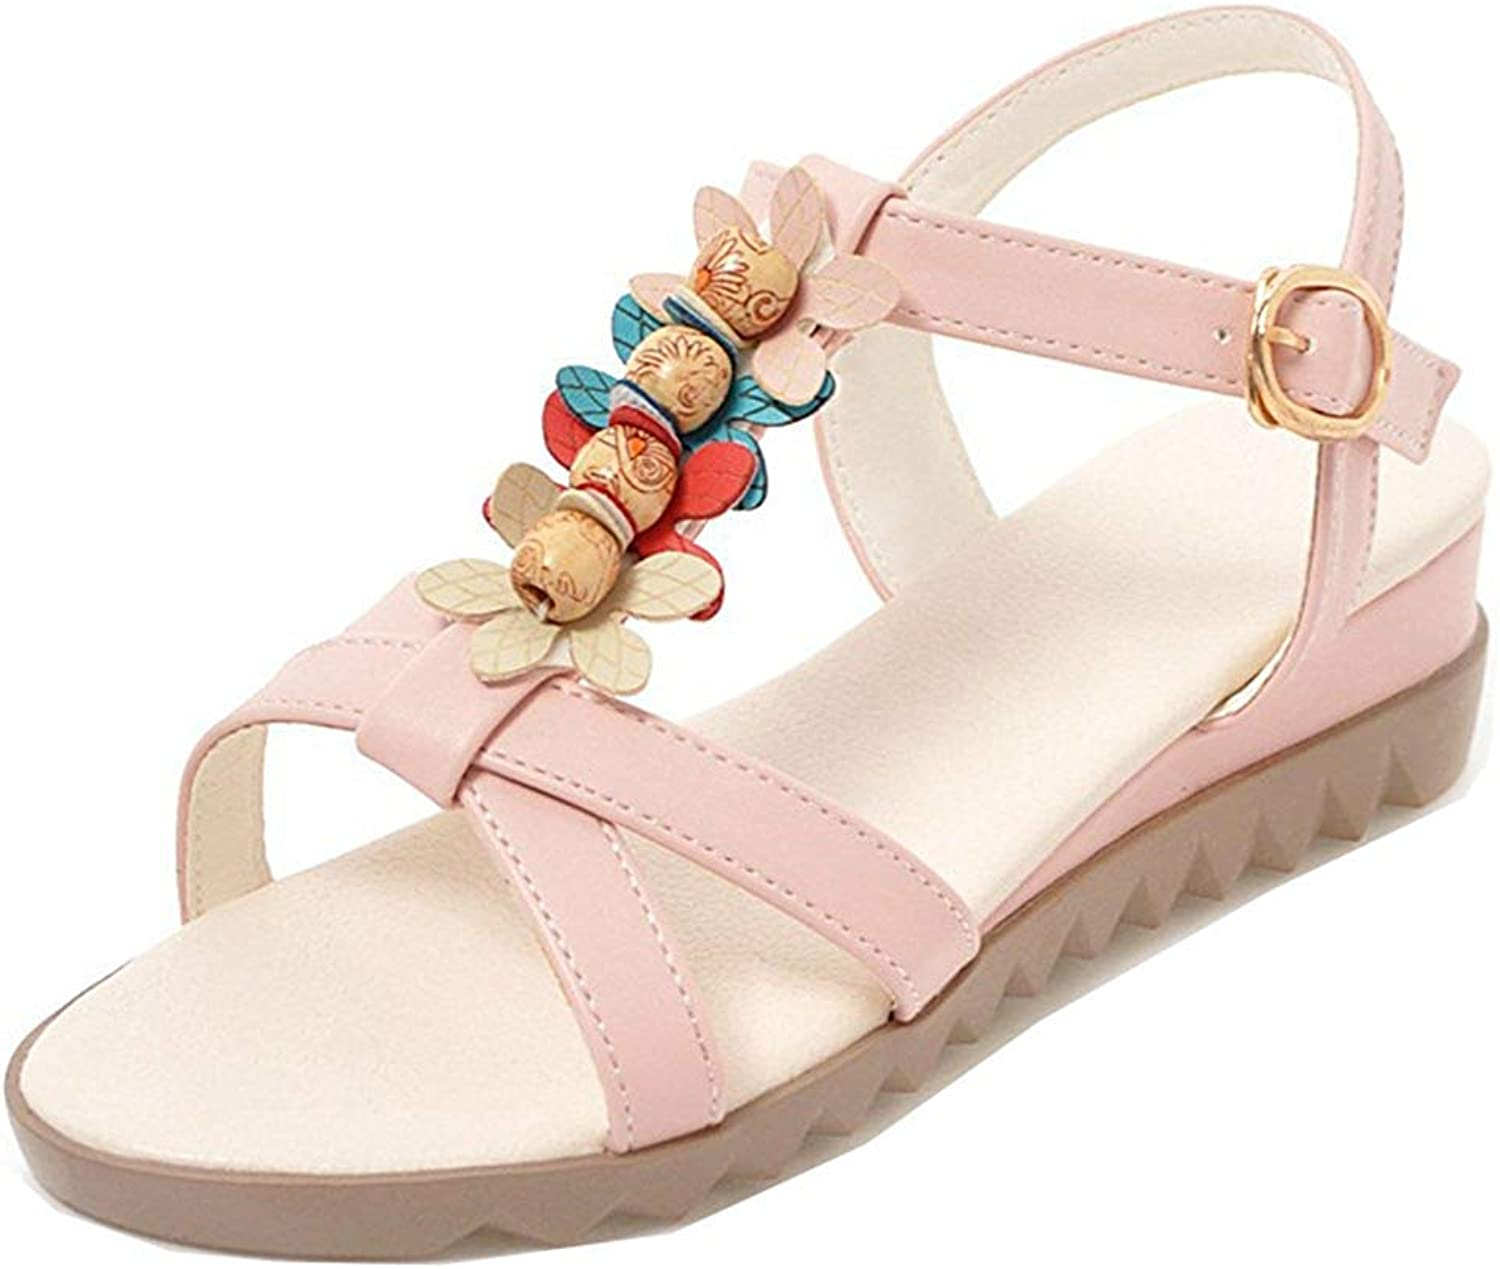 Unm Women's Open Toe Wedge Sandals with Ankle Strap - Bohemian Beaded - Low Heel Buckled